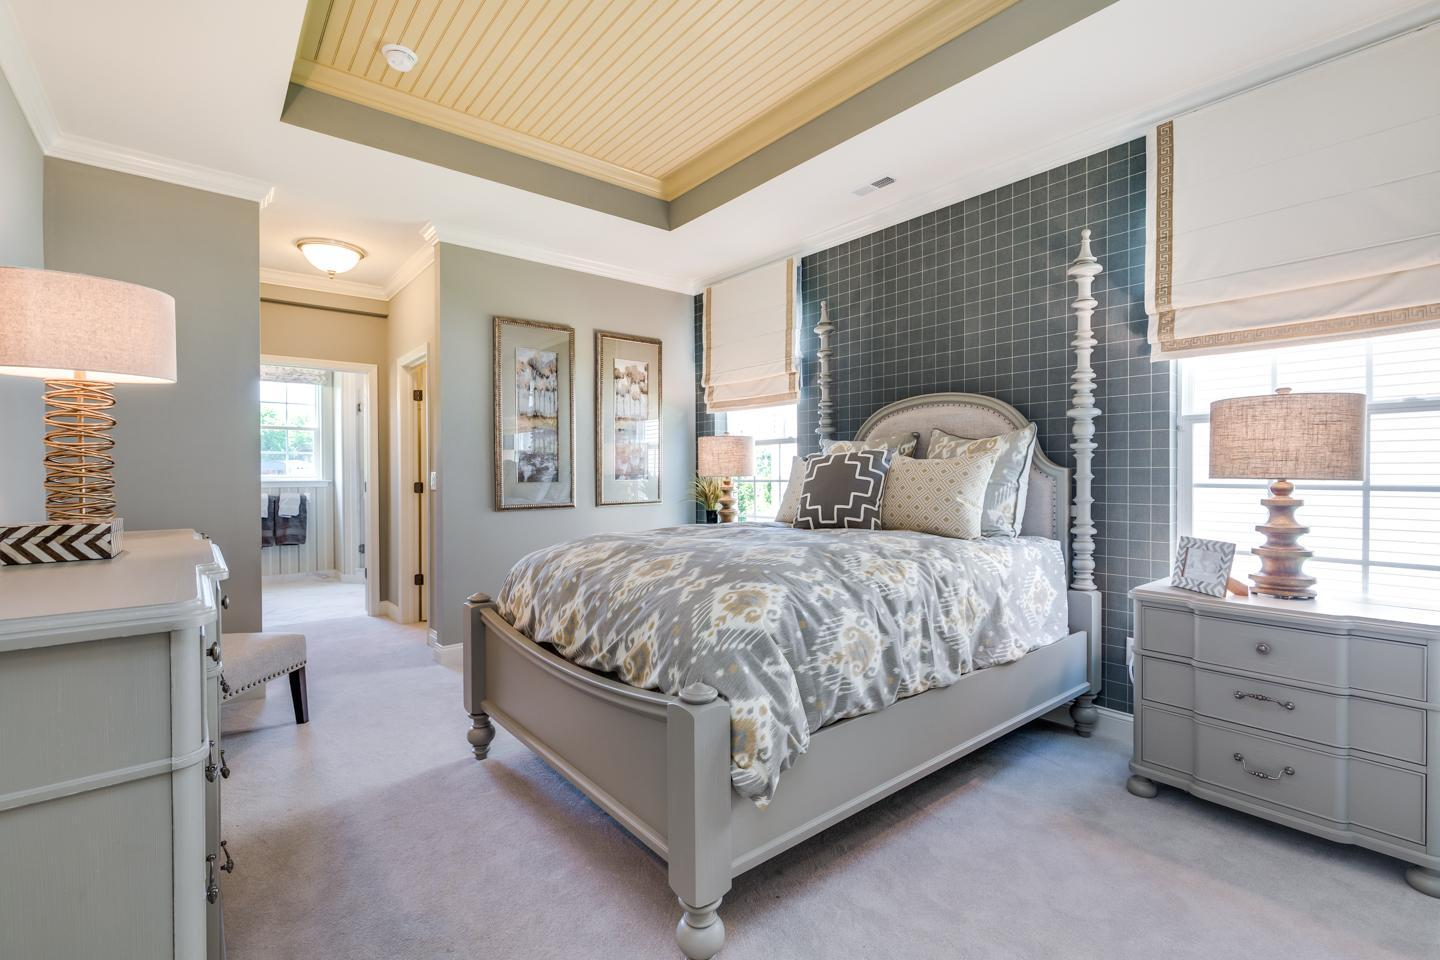 'The Village of Country Gardens' by Paparone New Homes in Philadelphia